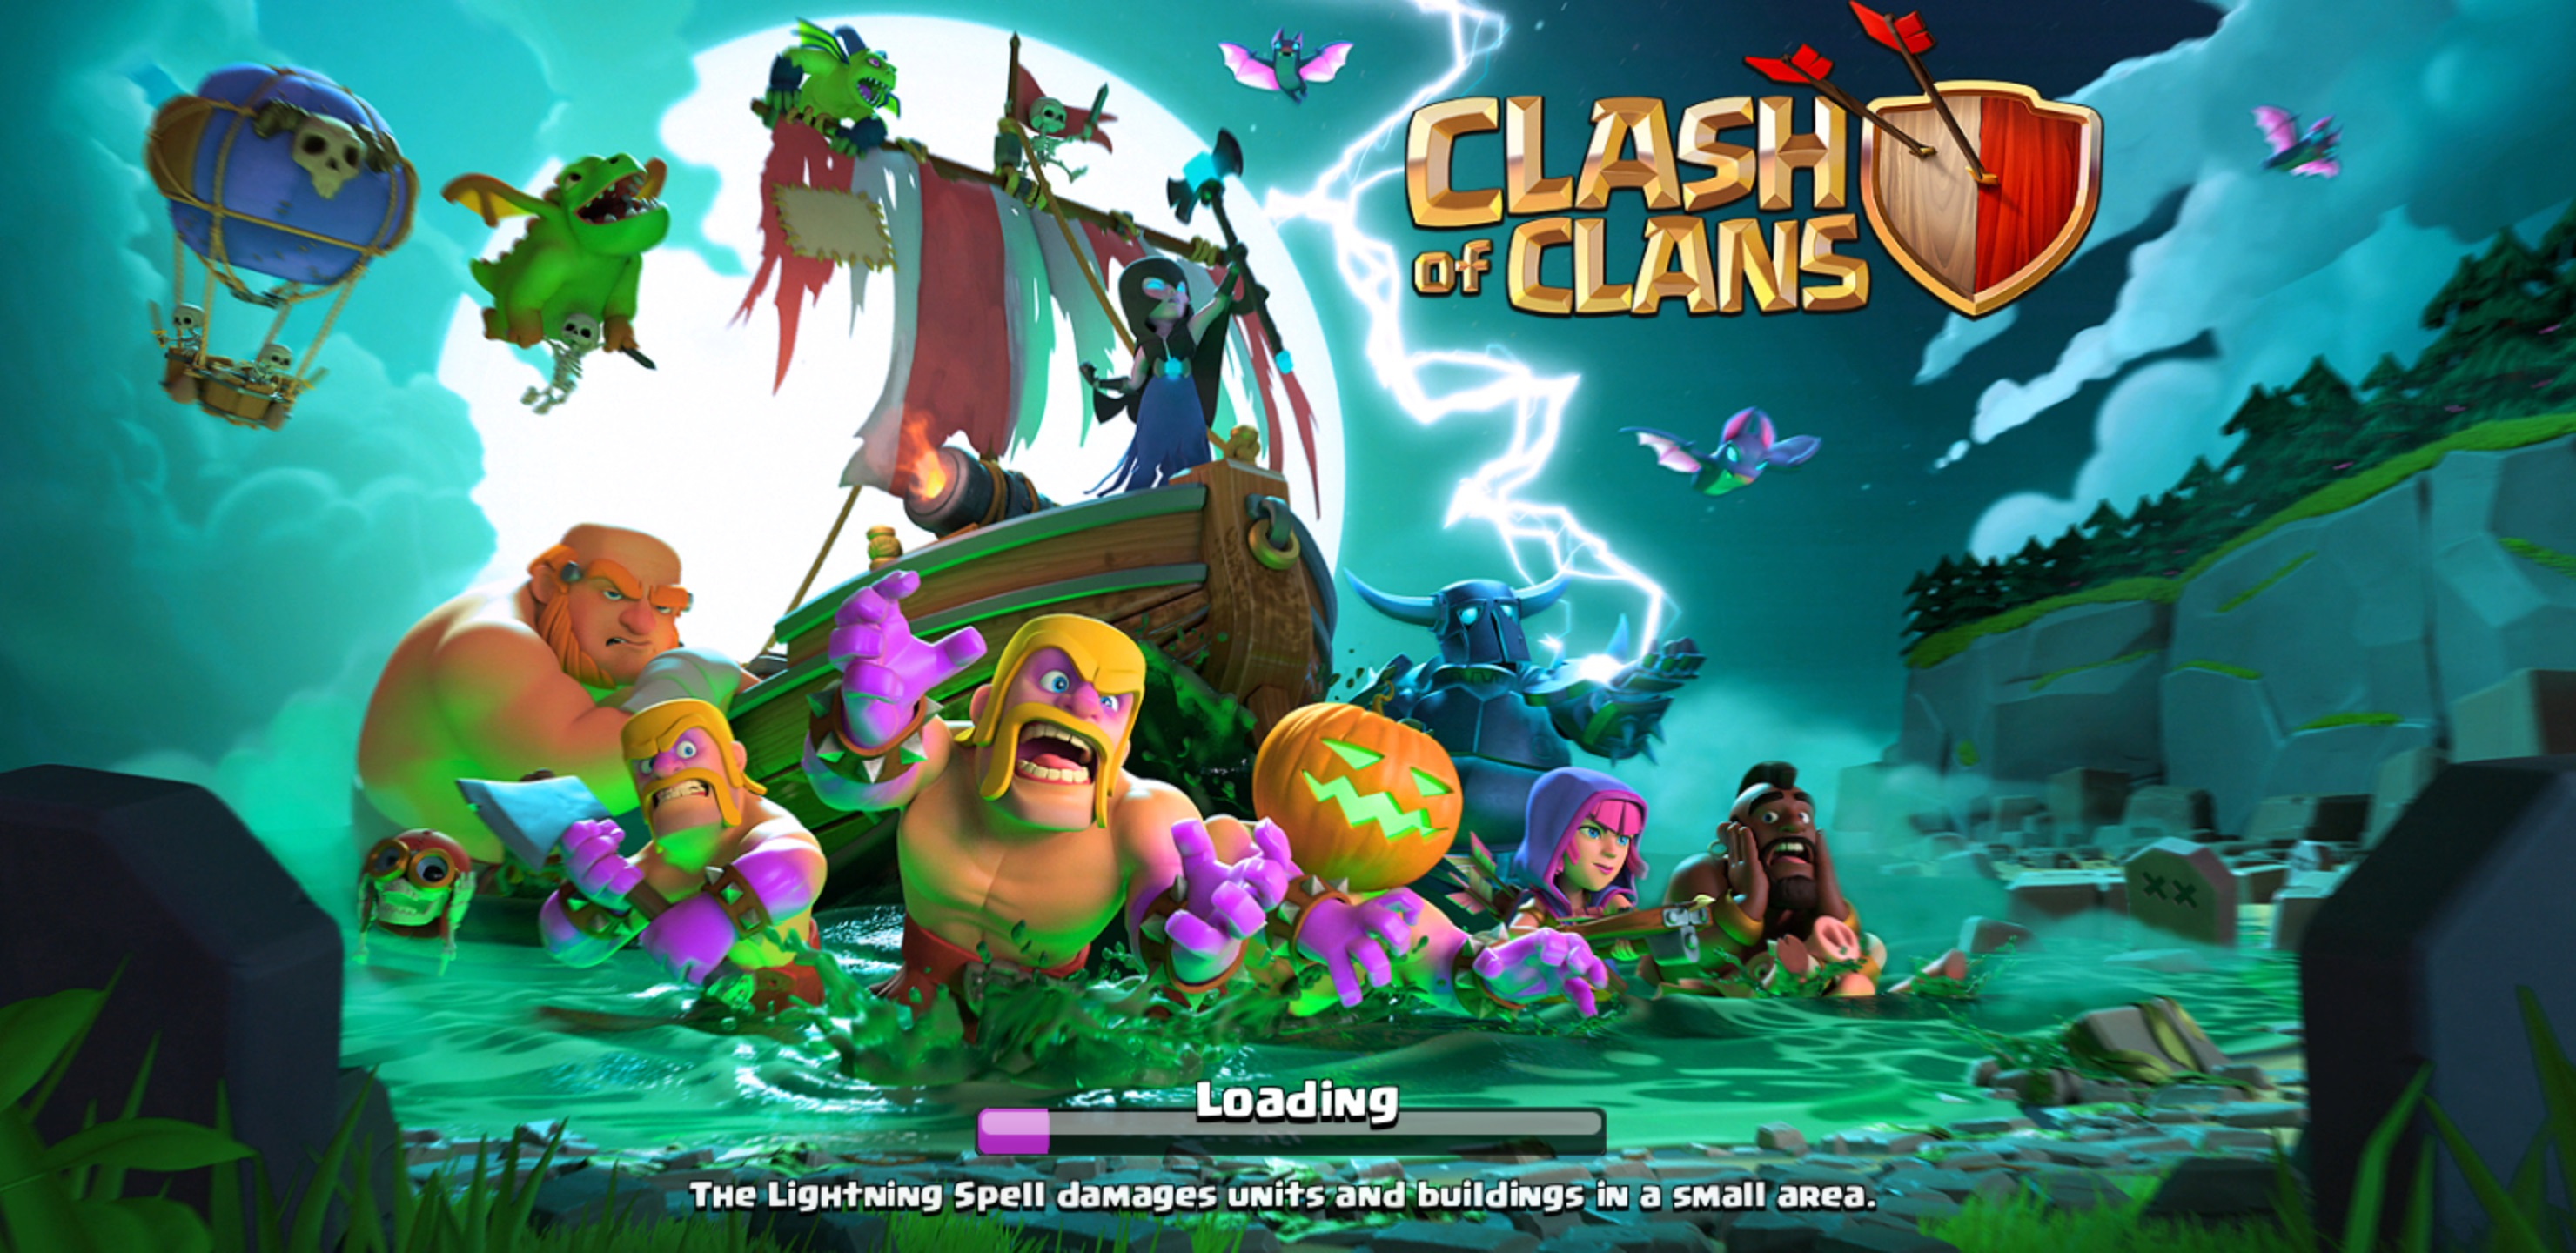 Clash of Clans v9.256.17 Mod Apk [October 2017] | AxeeTech